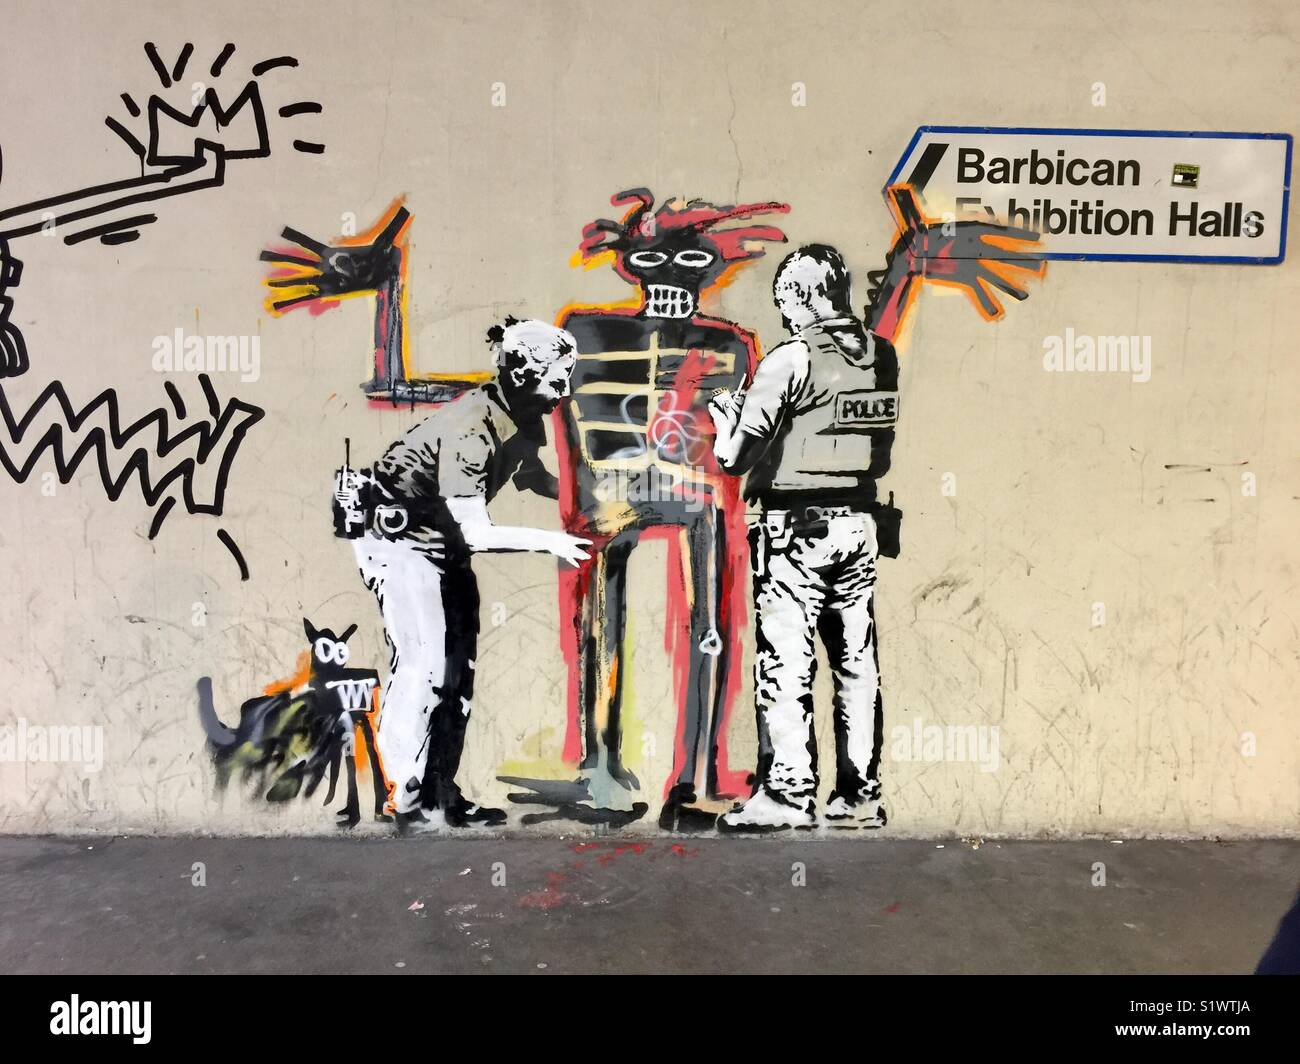 Street art by Bansky, homage to the Jean-Michel Basquiat exhibit at the Barbican Center, London, United Kingdom. Stock Photo